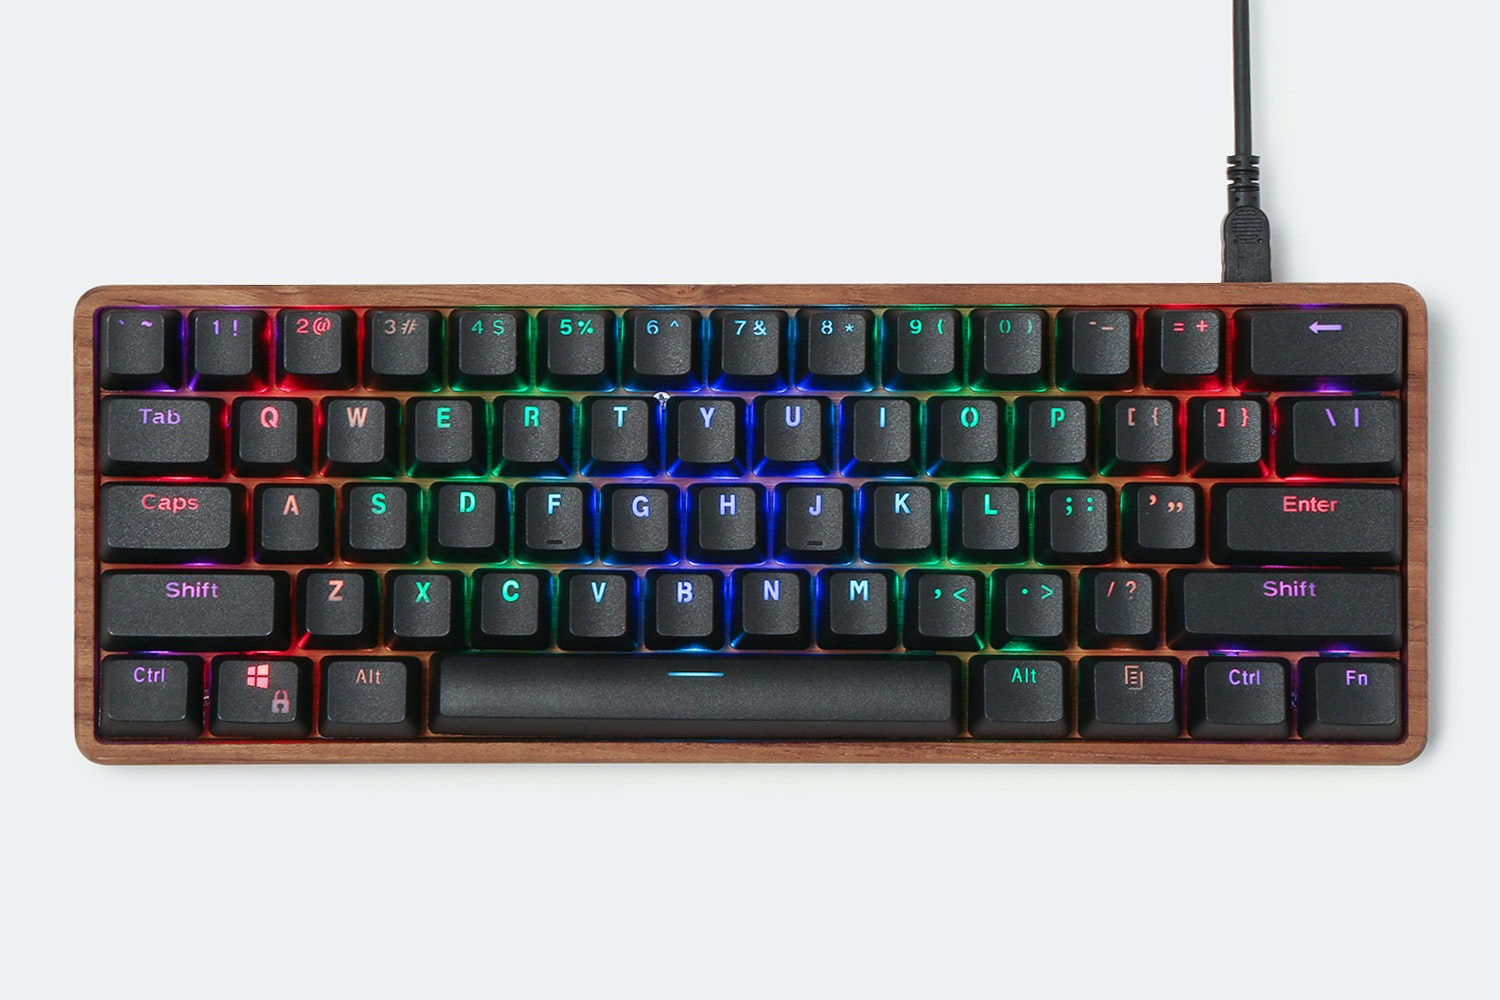 Teak Wood - 61 - Black Backlit keycaps - Wood